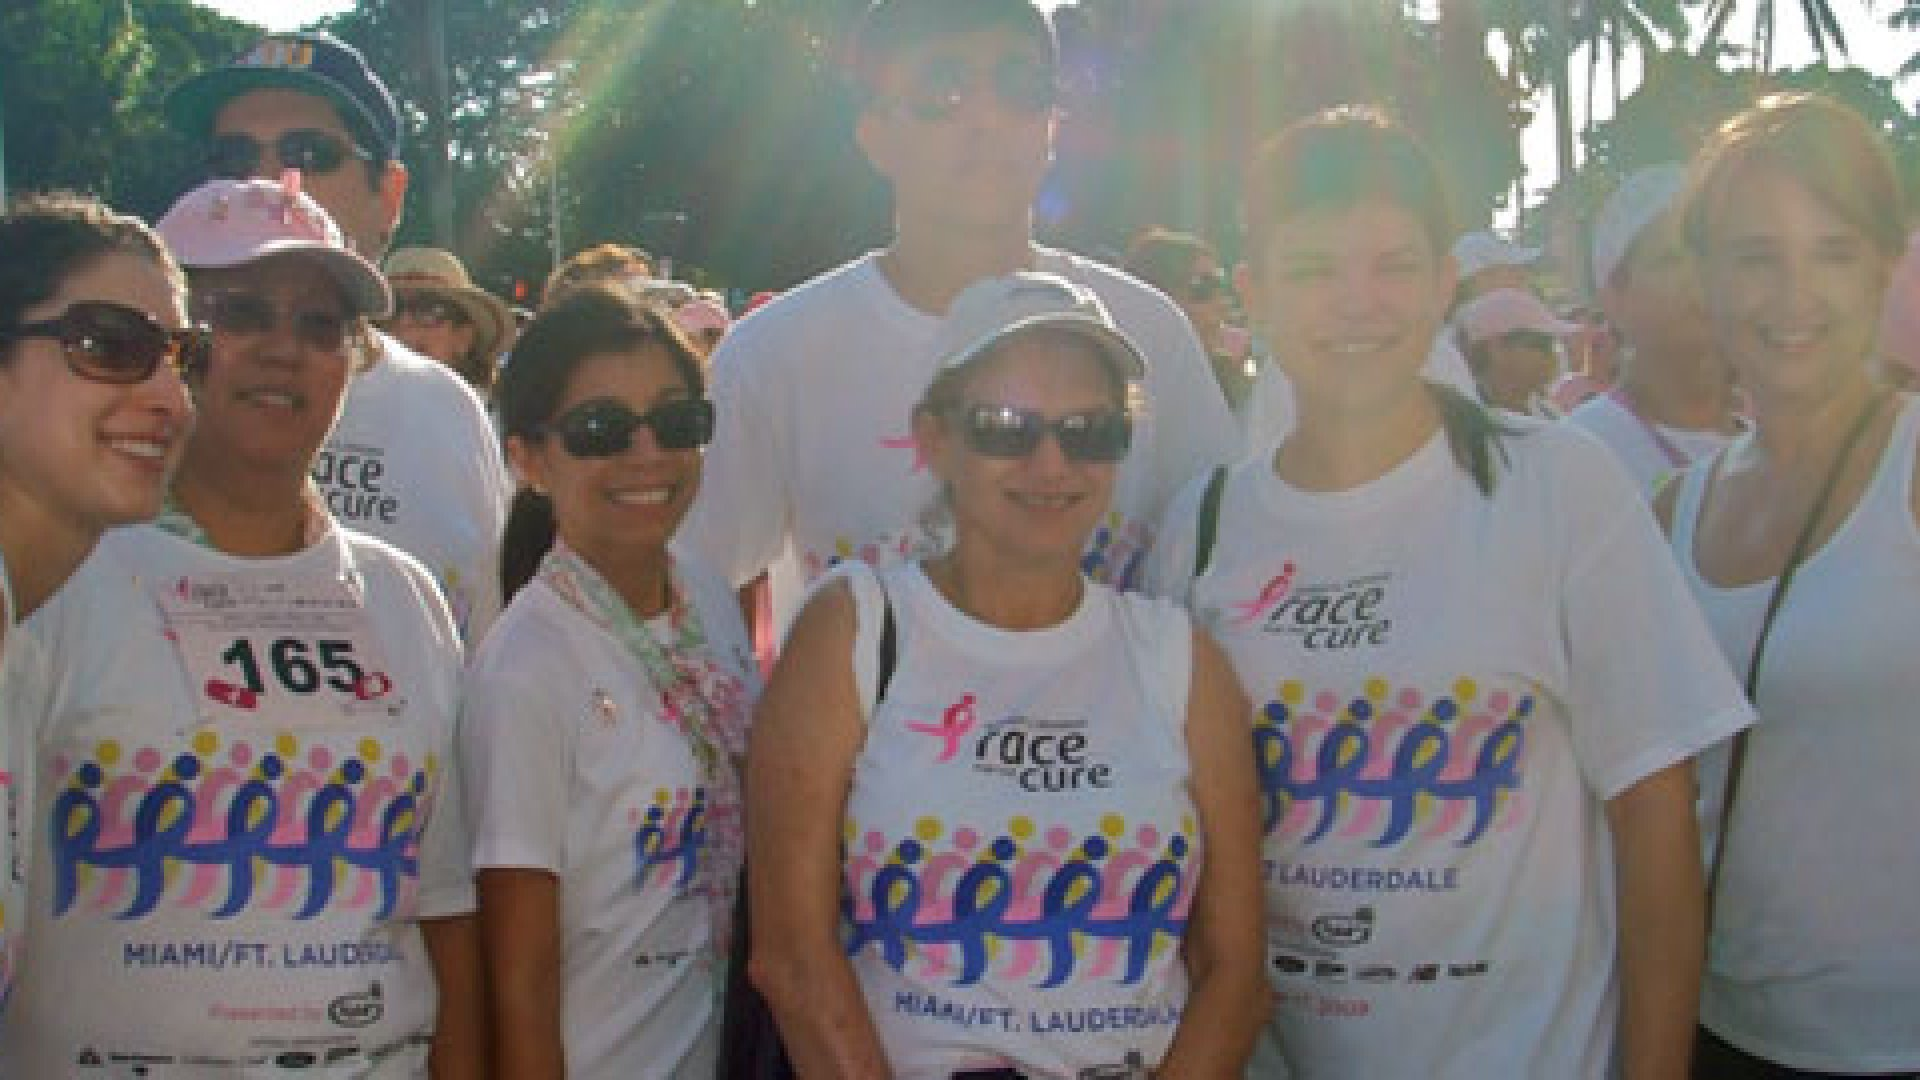 rbb employees participate in a 2009 Susan G. Komen Race For the Cure in Fort Lauderdale, Fla.